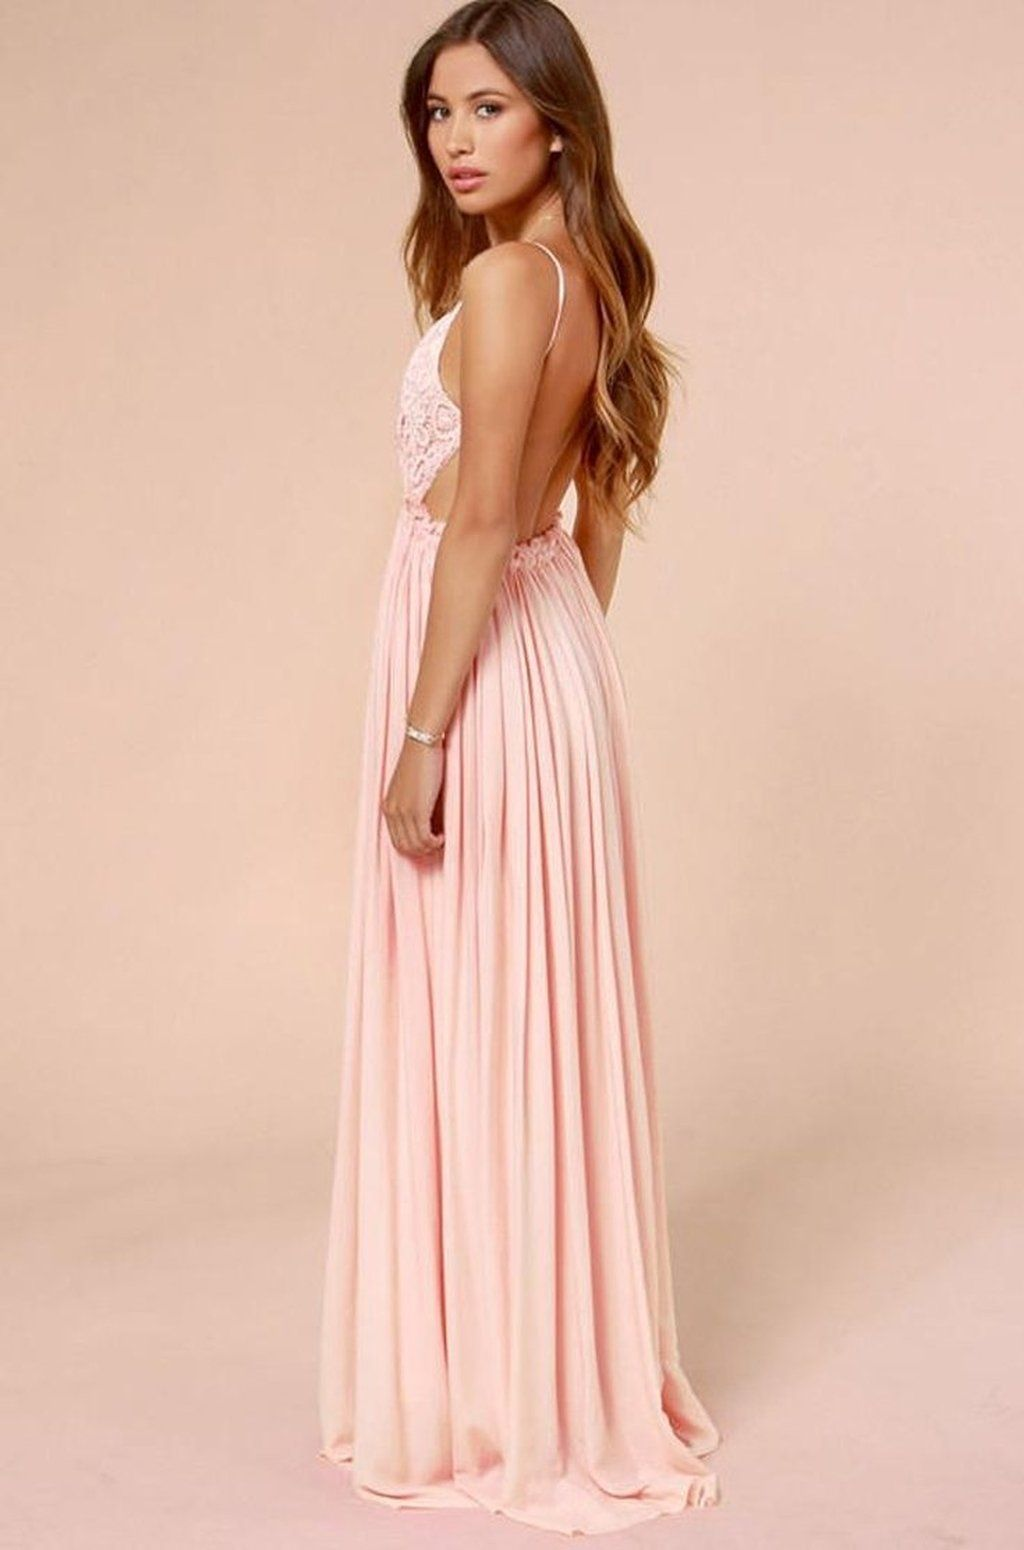 Something Special Crochet Maxi Dress - Blush | What my closet is ...